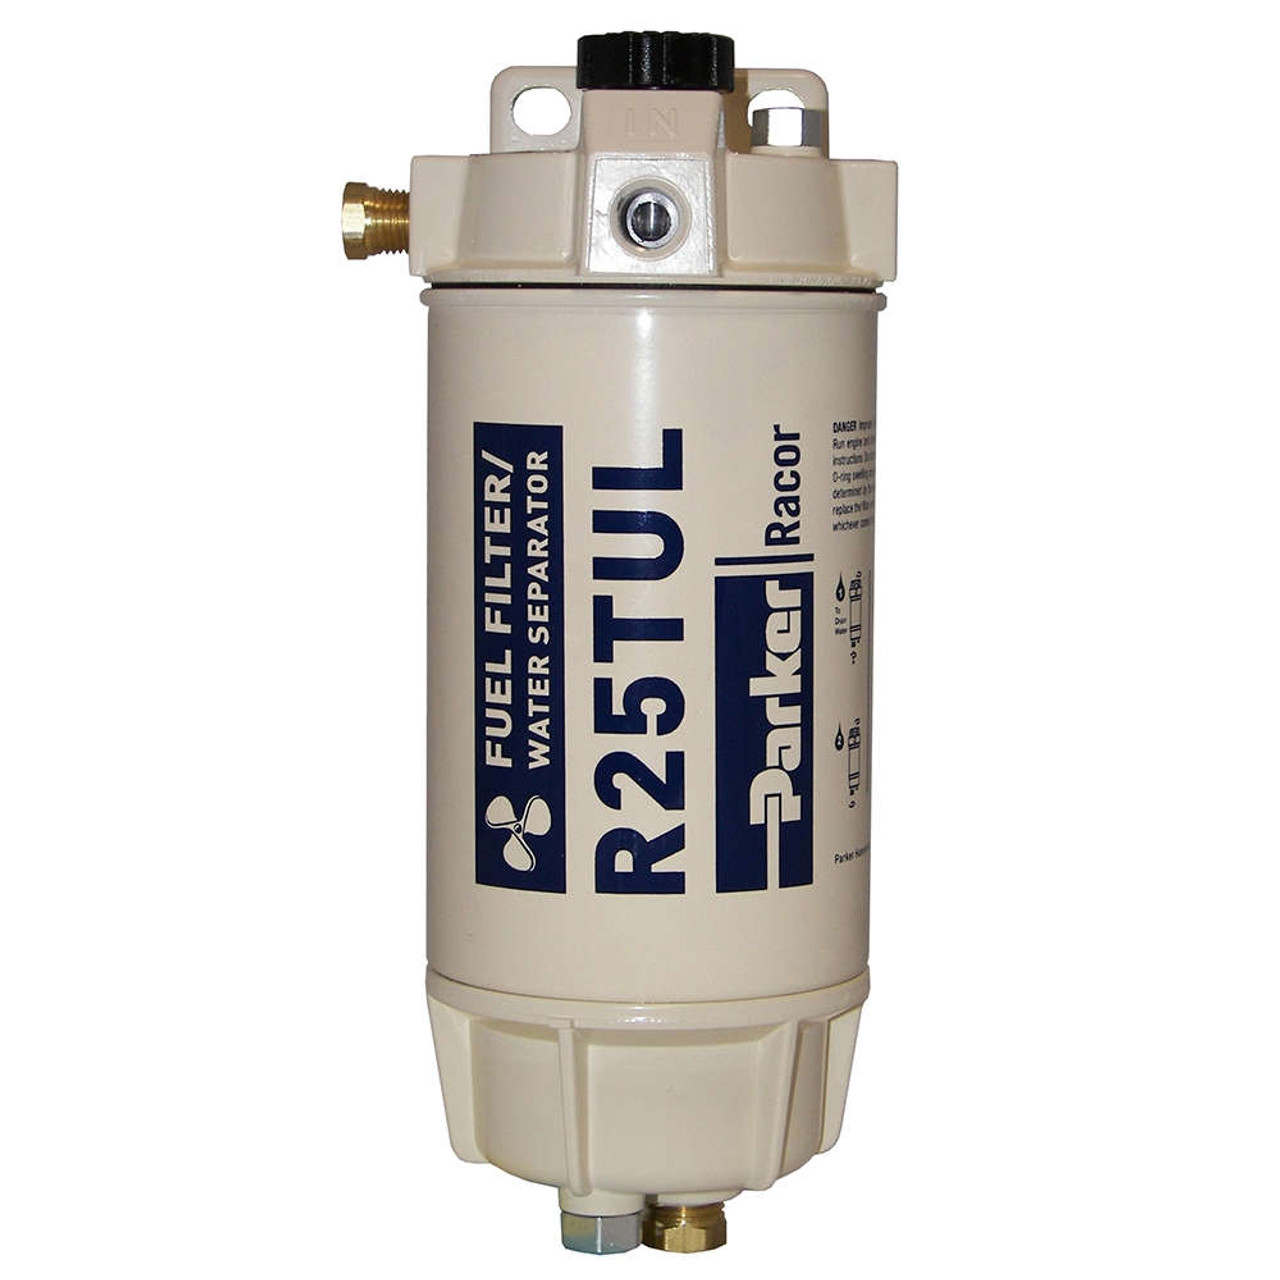 small resolution of racor 1 4 in 45 gph aquabloc marine spin on type diesel fuel filter water separator assembly 6 qty john m ellsworth co inc